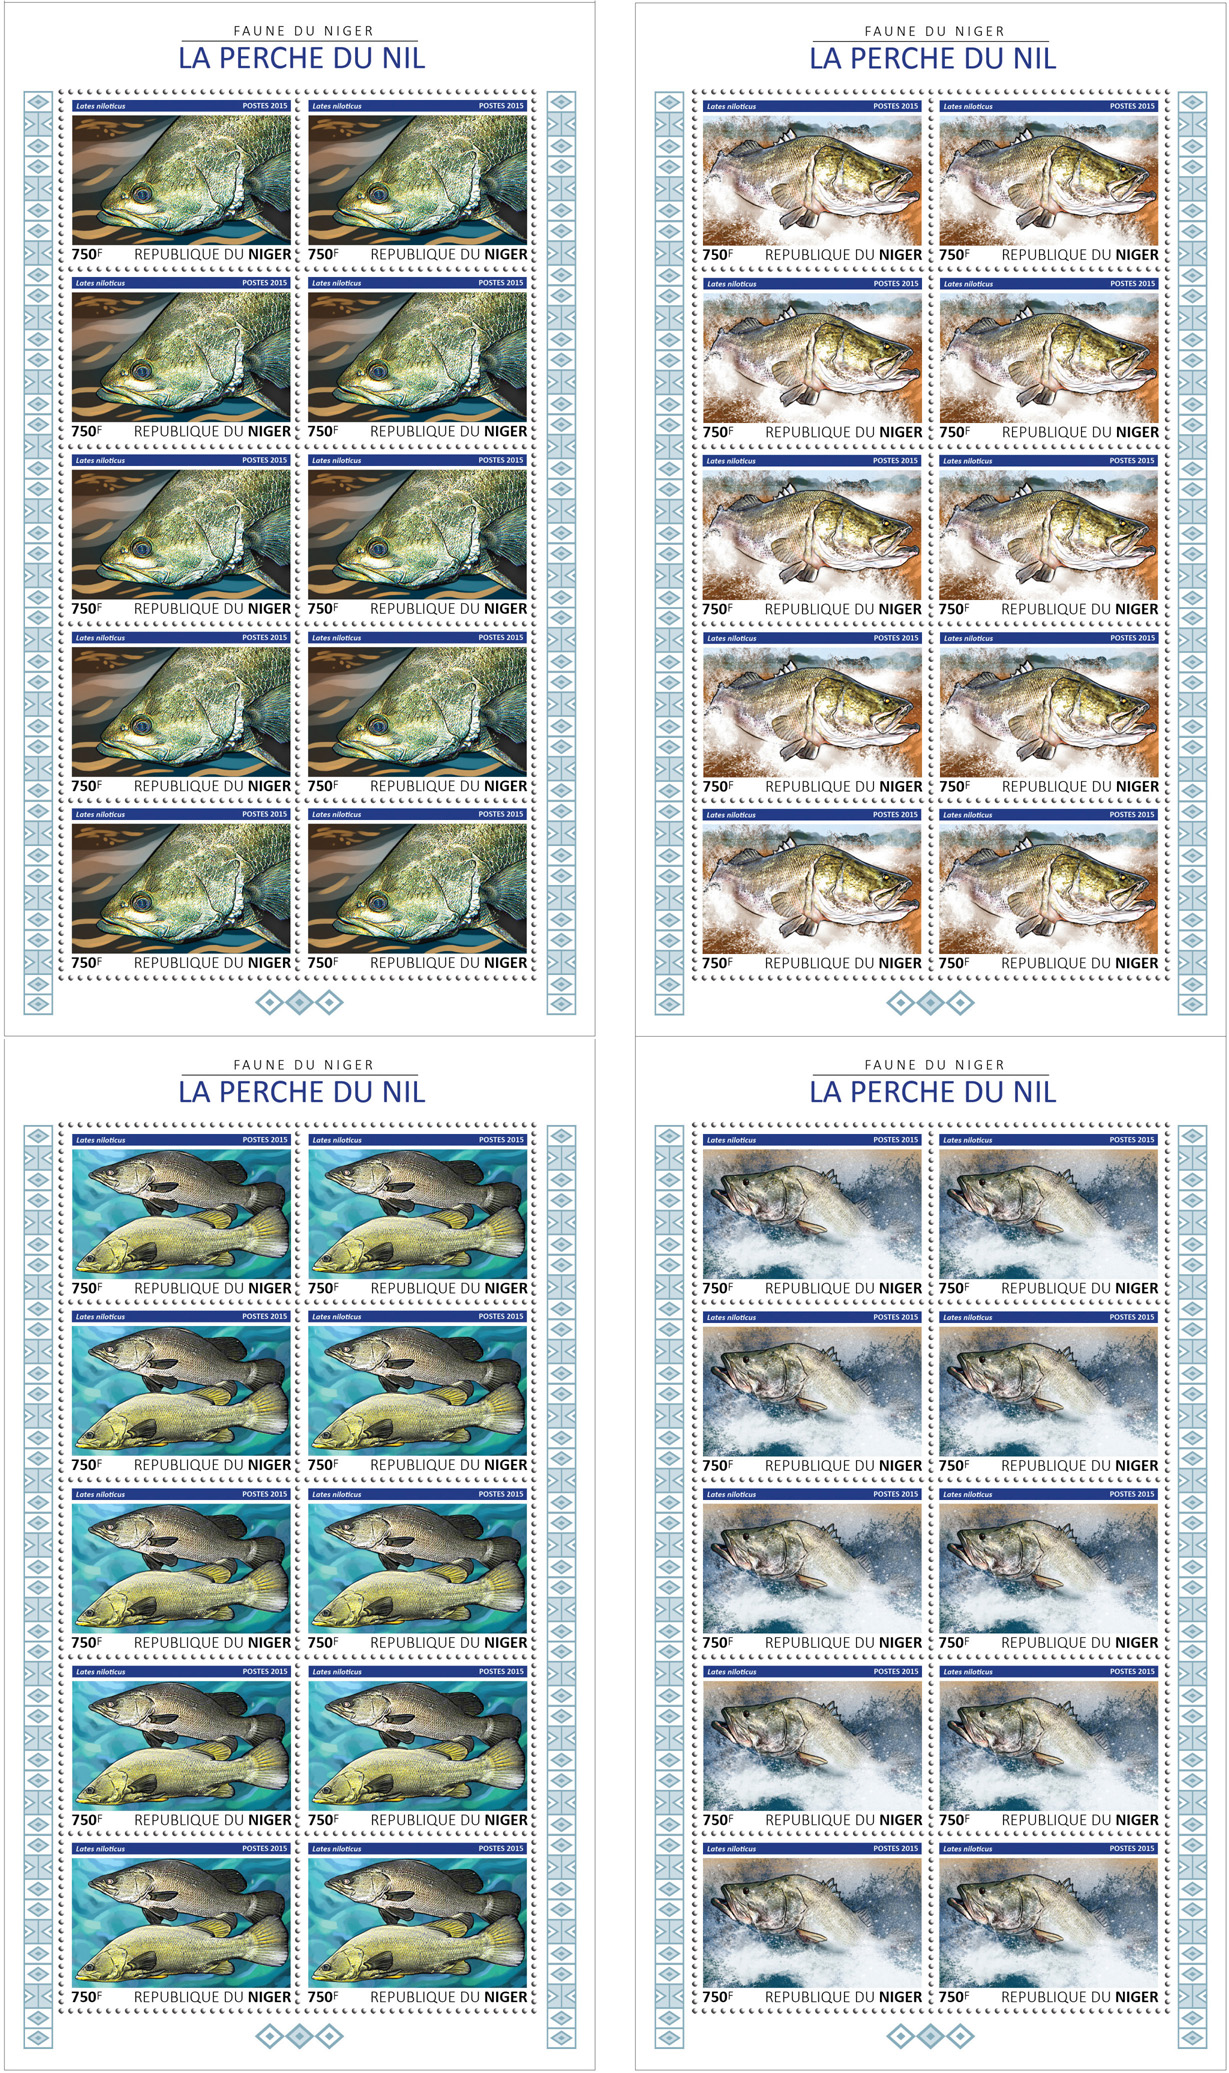 Fish 4x10v - Issue of Niger postage stamps